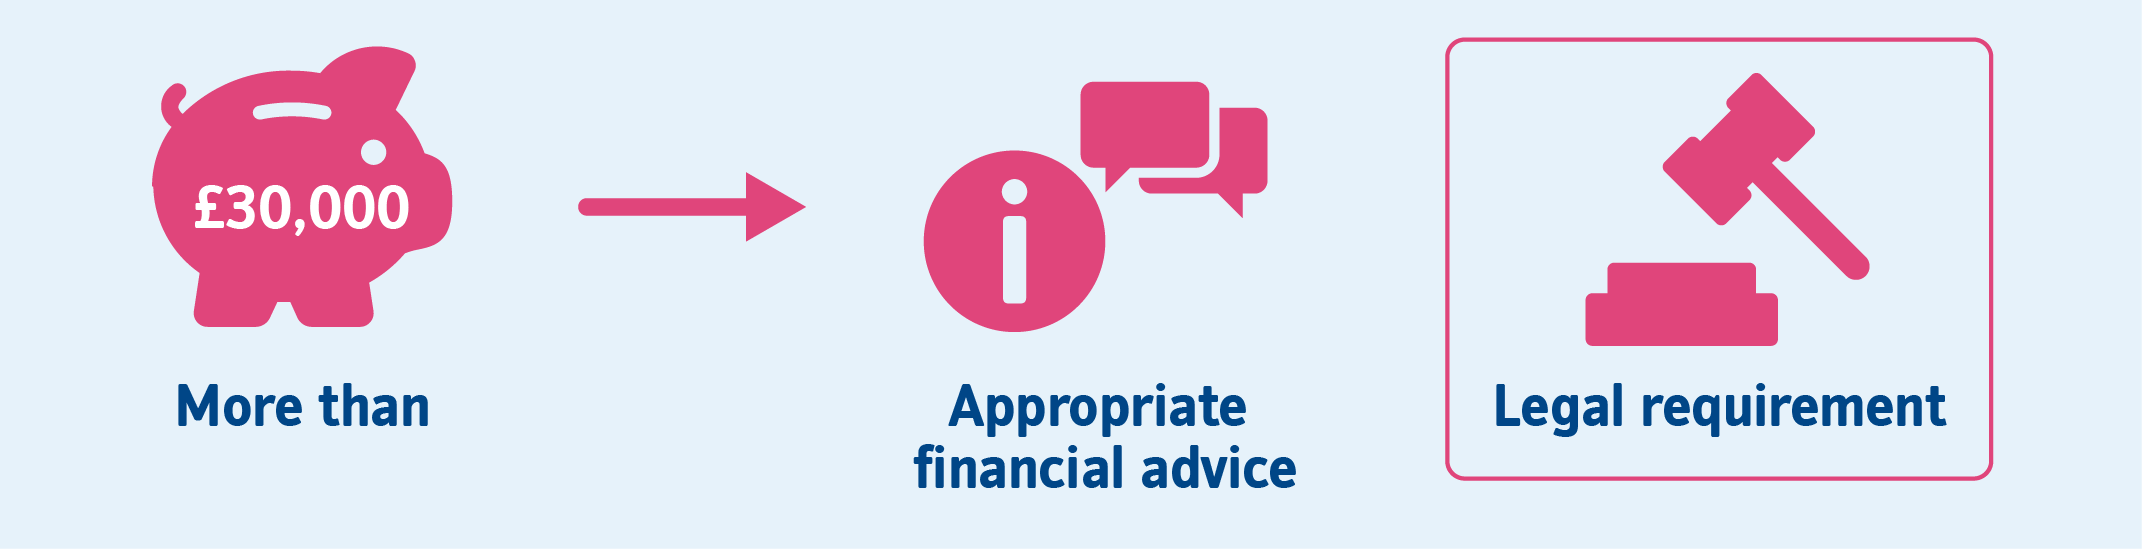 More than £30,000 -> Appropriate financial advice. Legal requirement